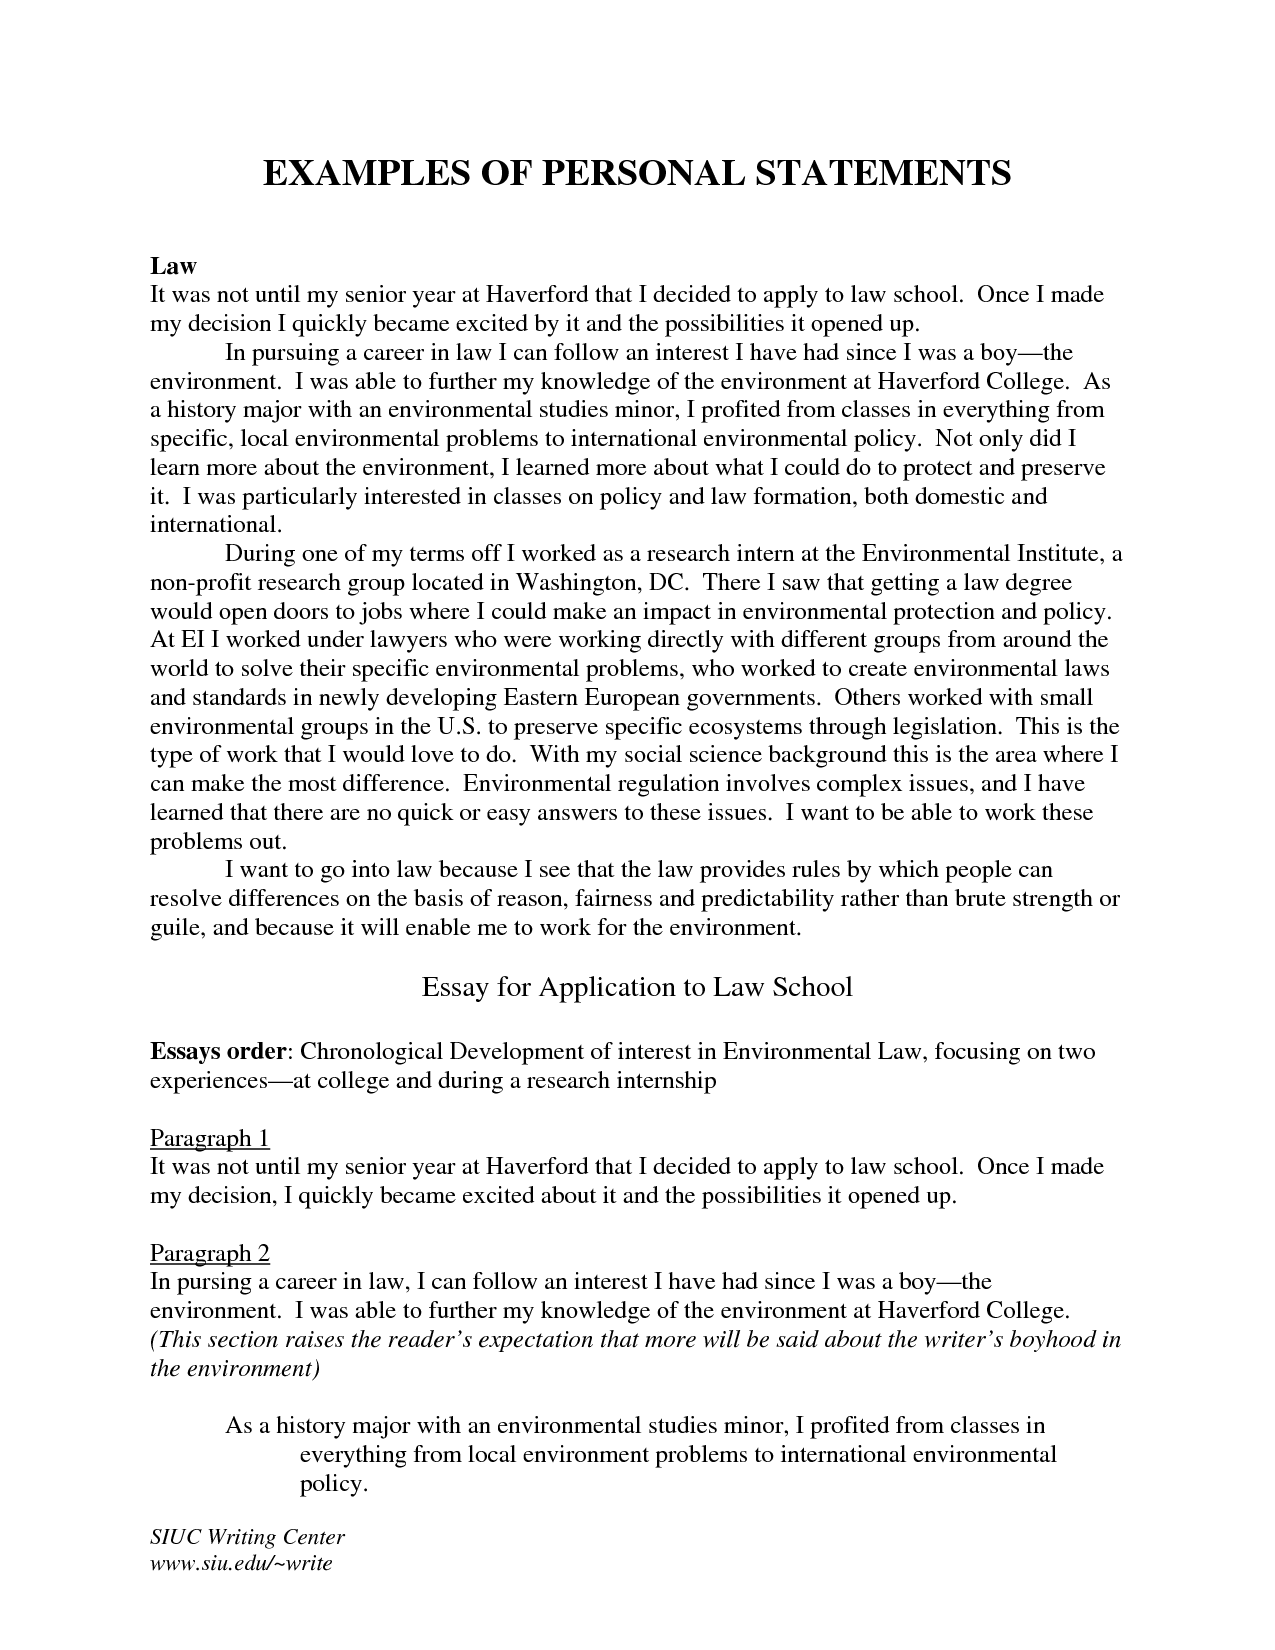 grad school essays samples offers tips on writing a statement of purpose and provides sample essay examplesschool essaylaw - Law School Essay Examples